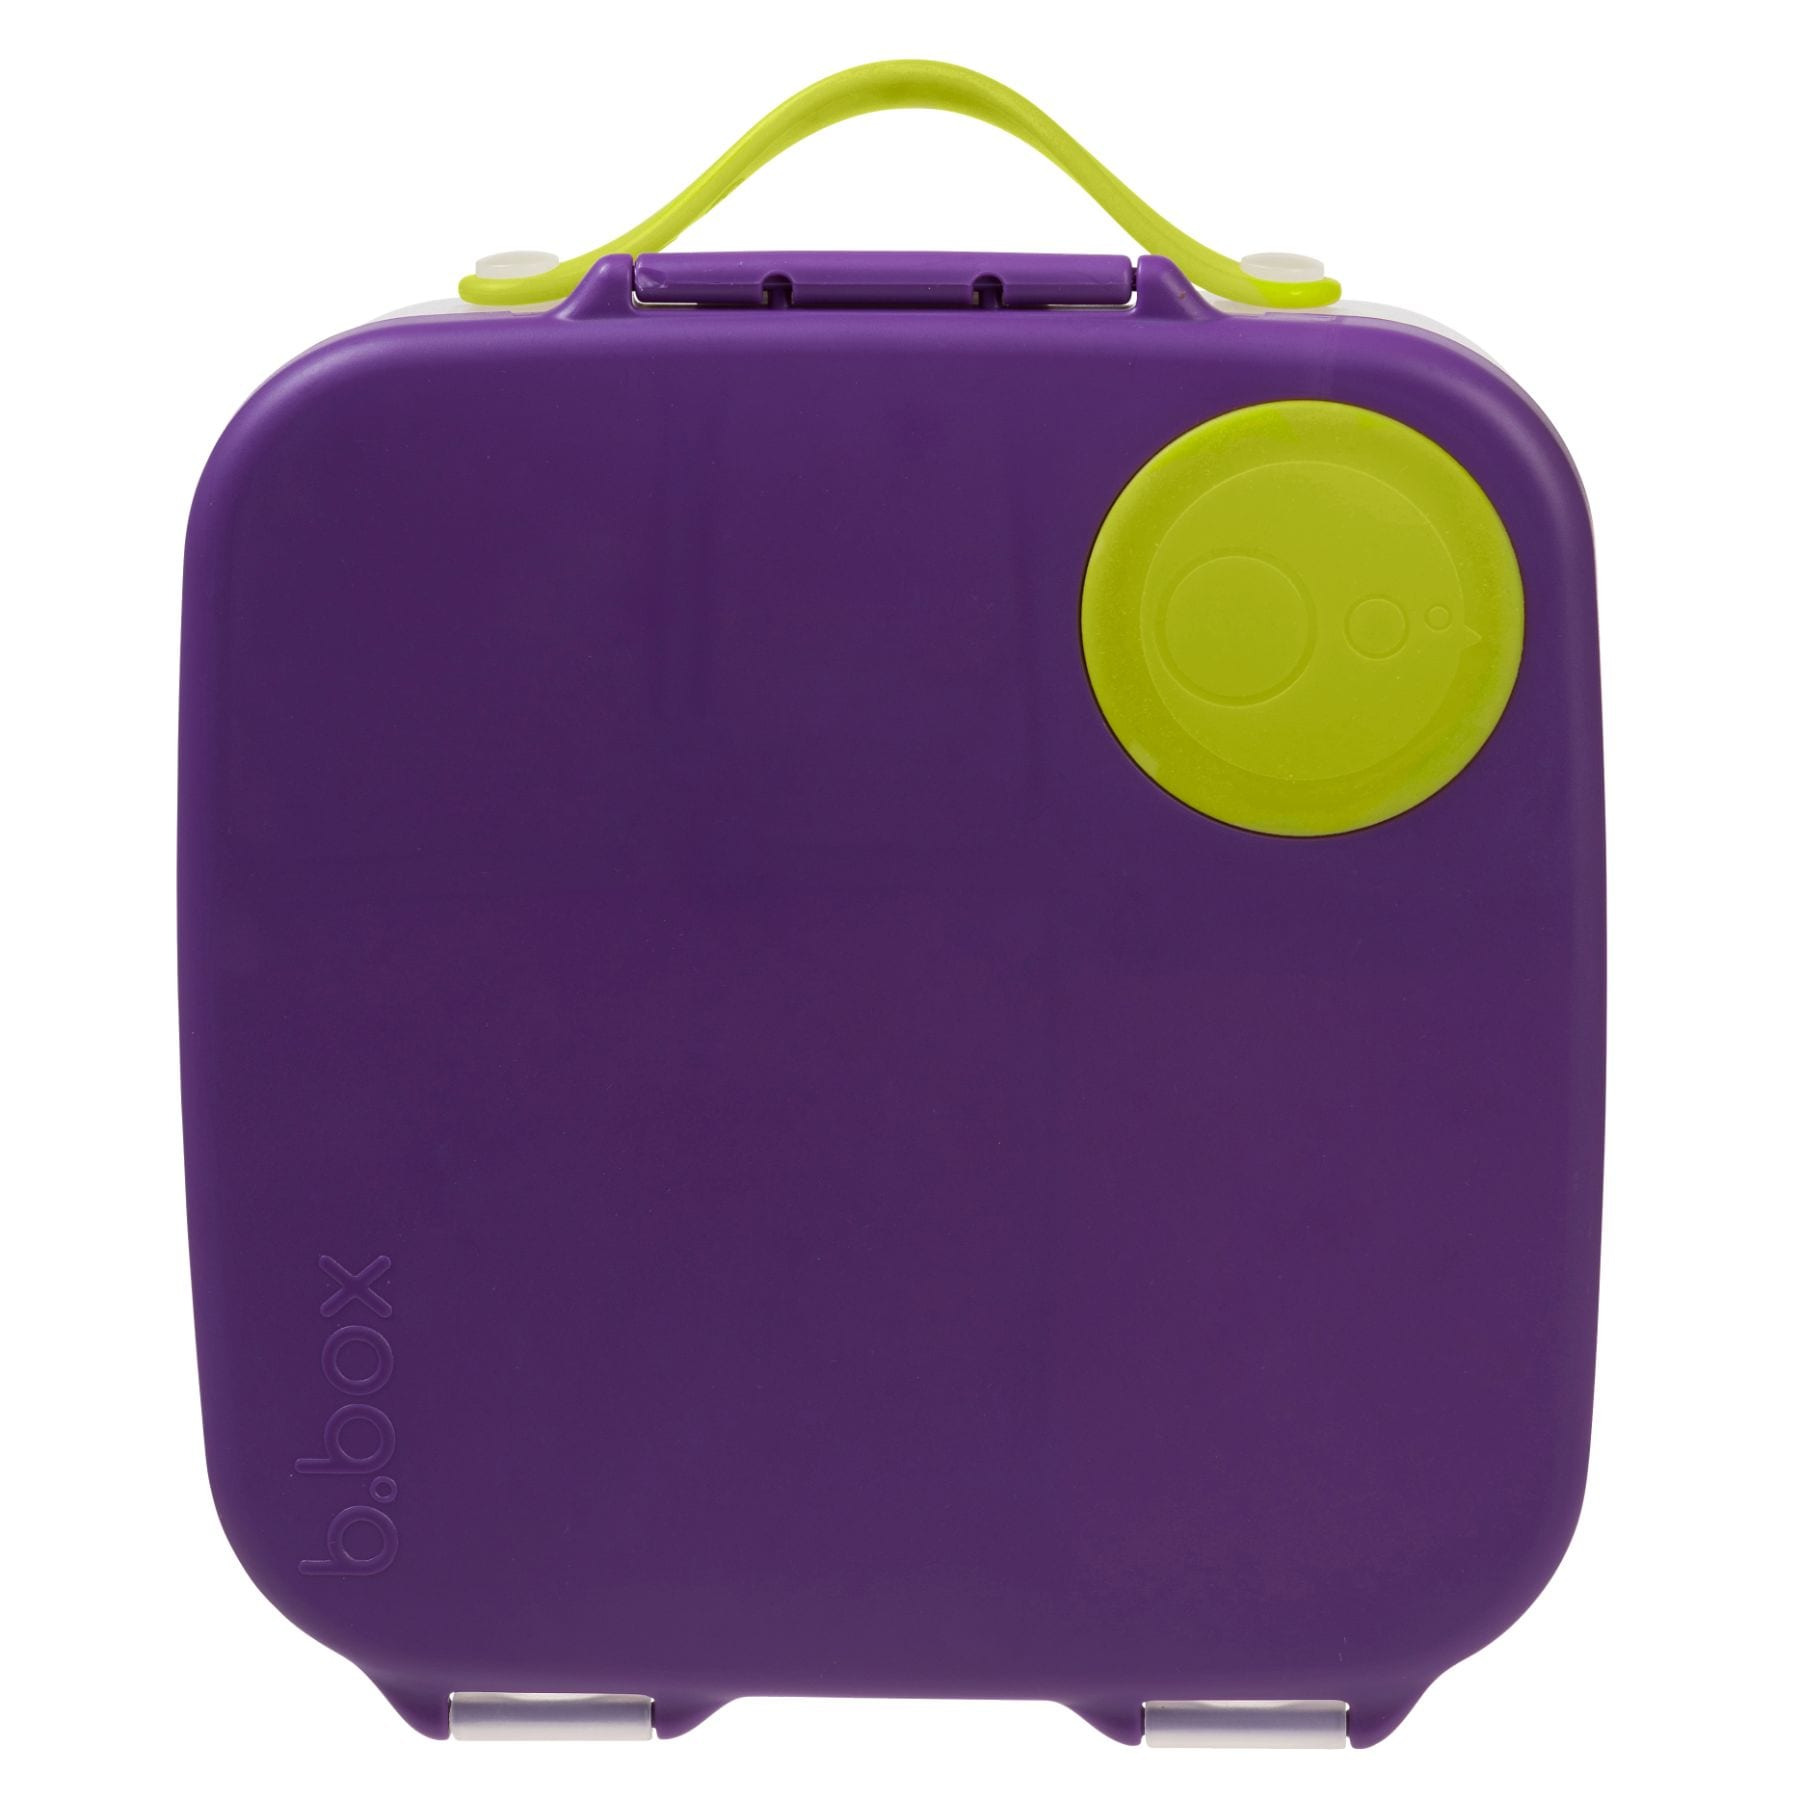 b.box Lunch Box - Passion Splash